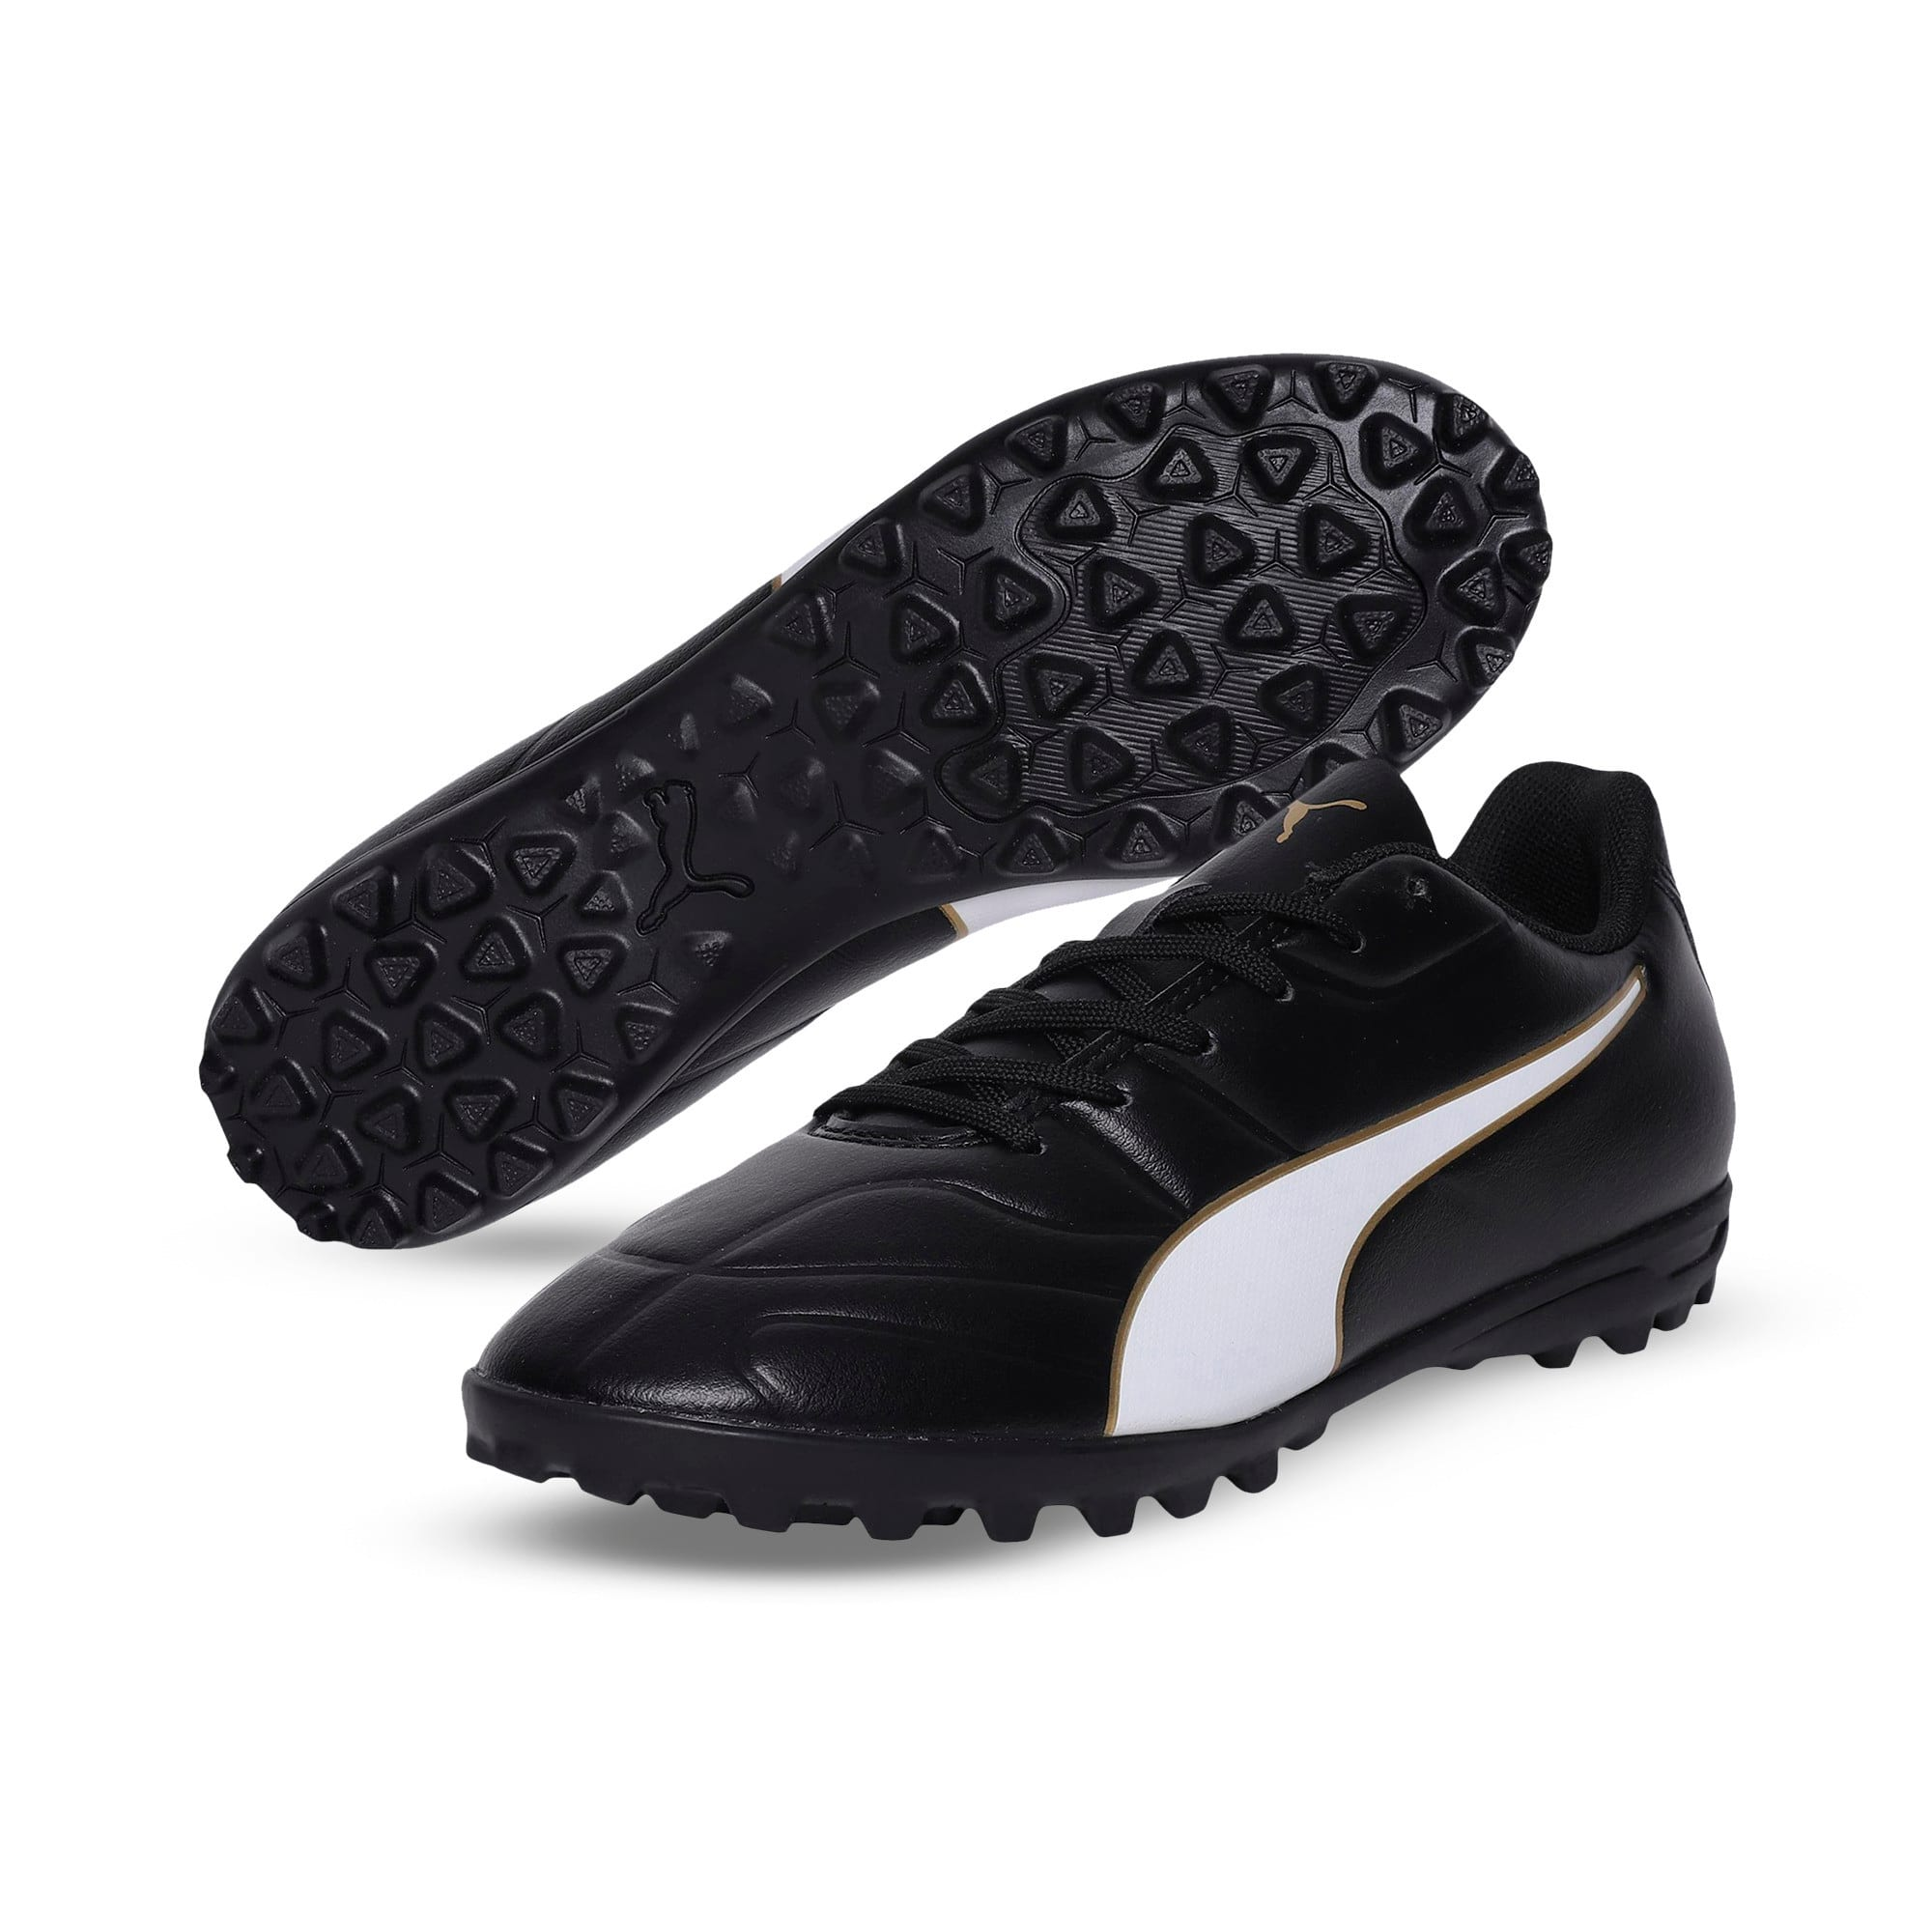 Thumbnail 2 of Classico C II TT Youth Football Boots, Black-White-Gold, medium-IND